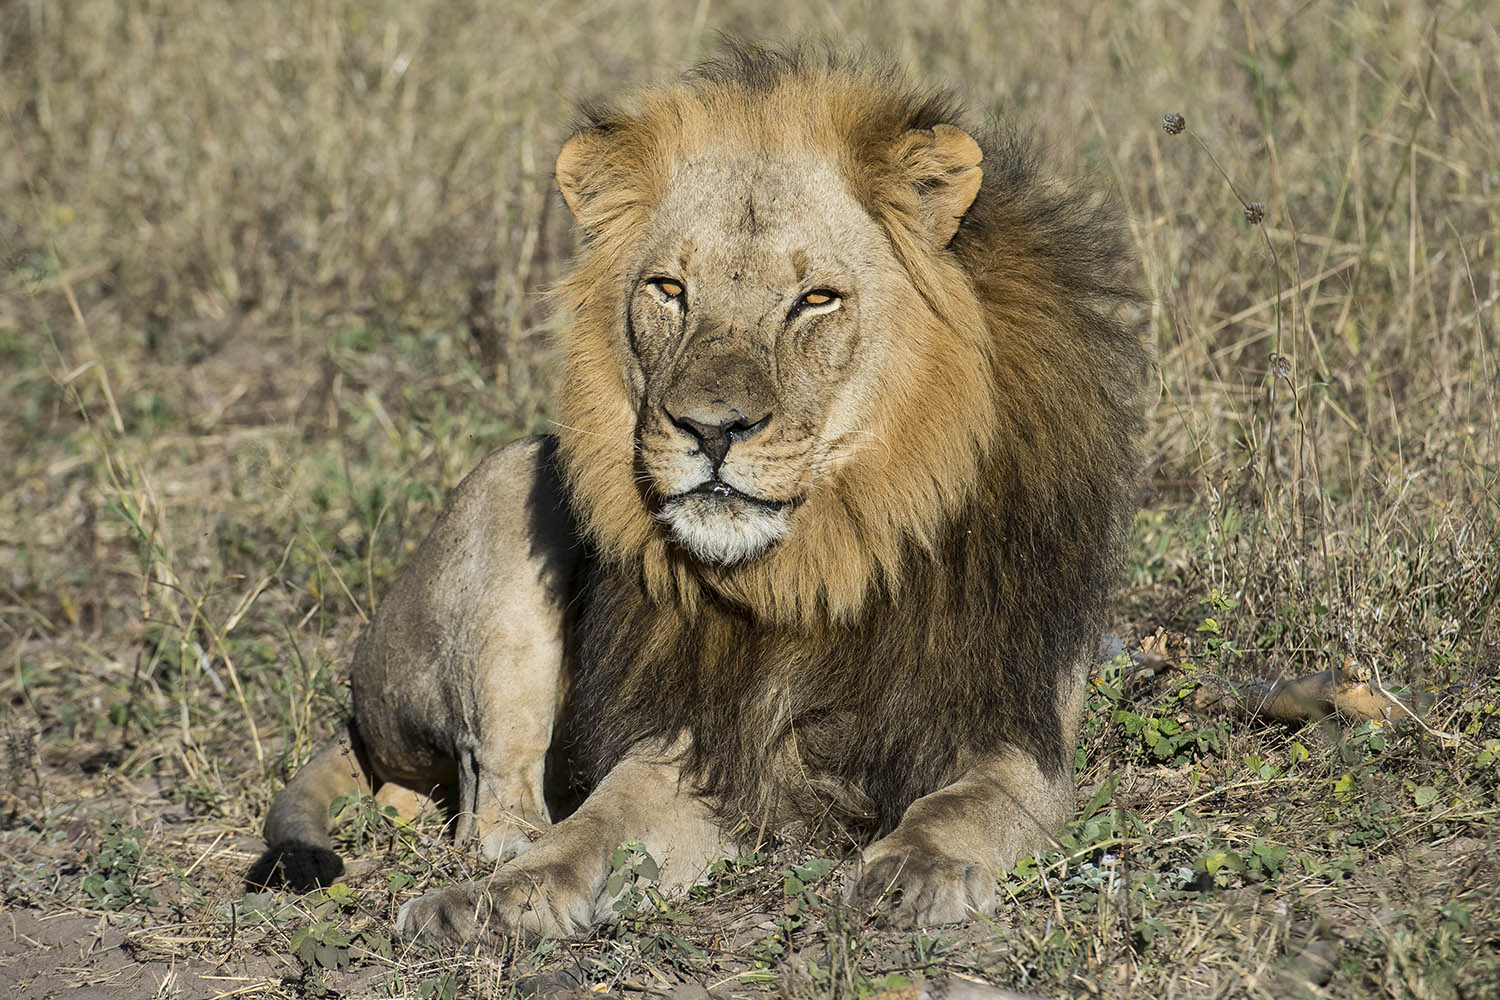 linkwasha camp hwange-national-park-zimbabwe-lodges-wildlife-lion